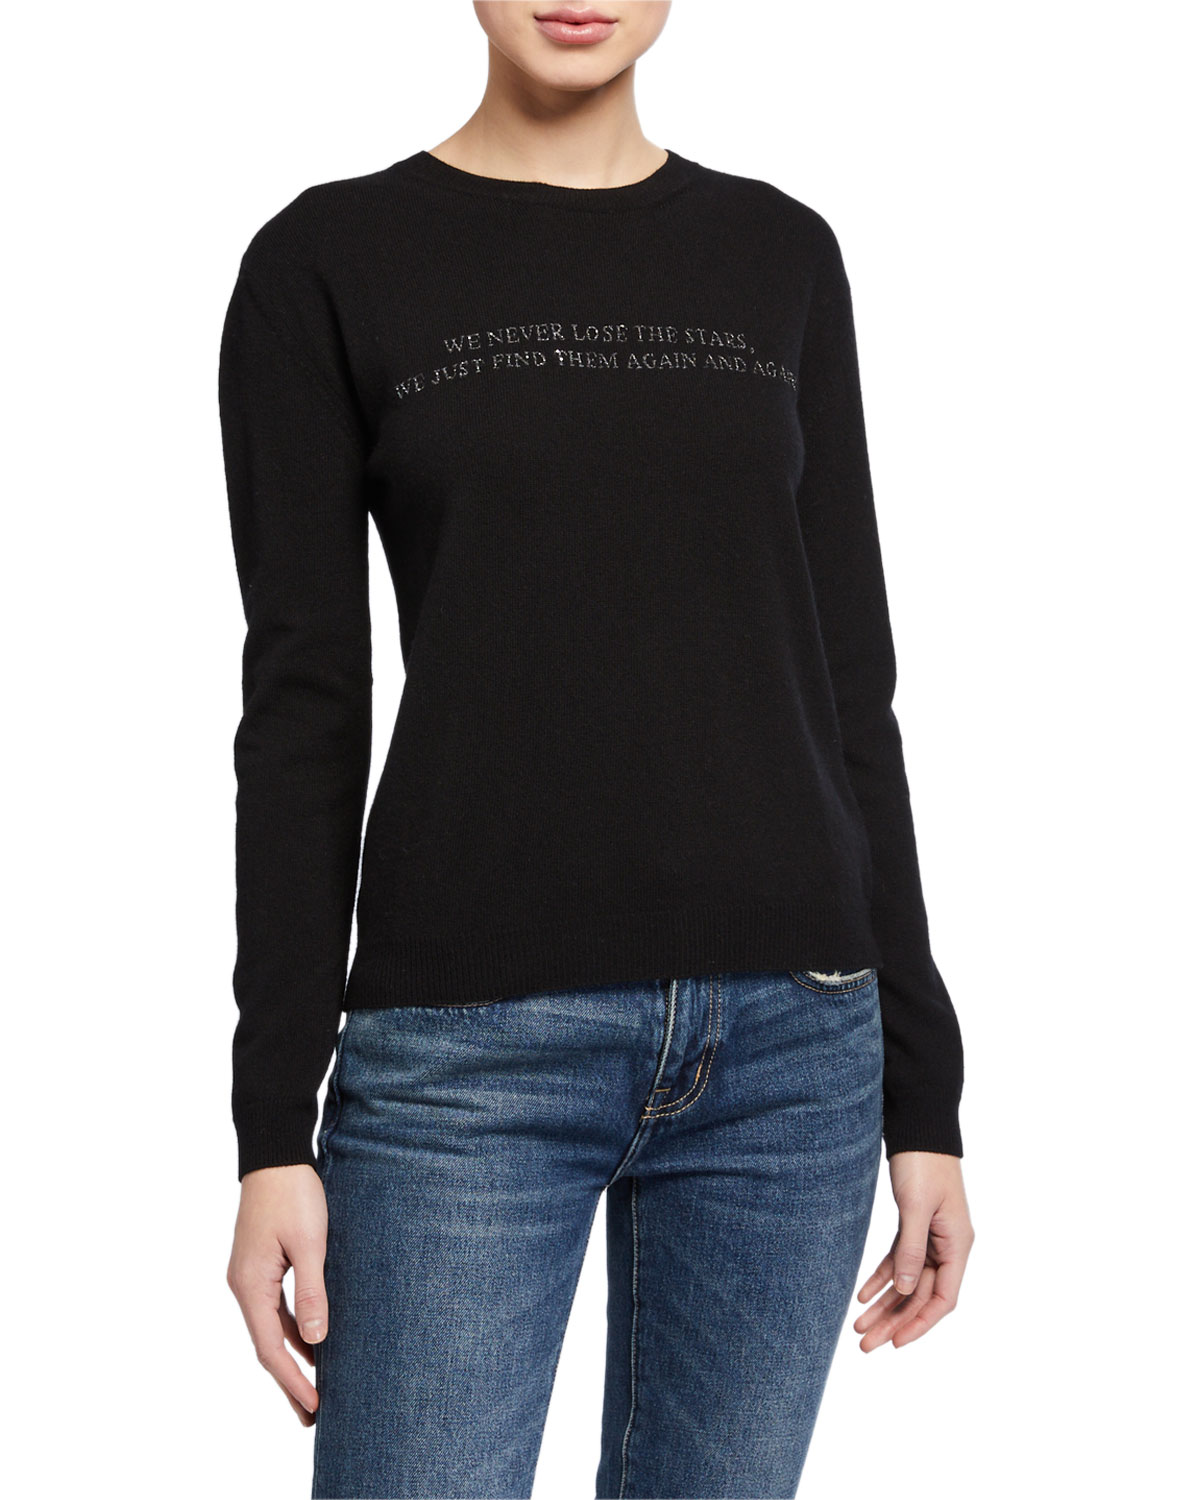 Valentino Knits KNIT POEM EMBROIDERED WOOL-BLEND SWEATER